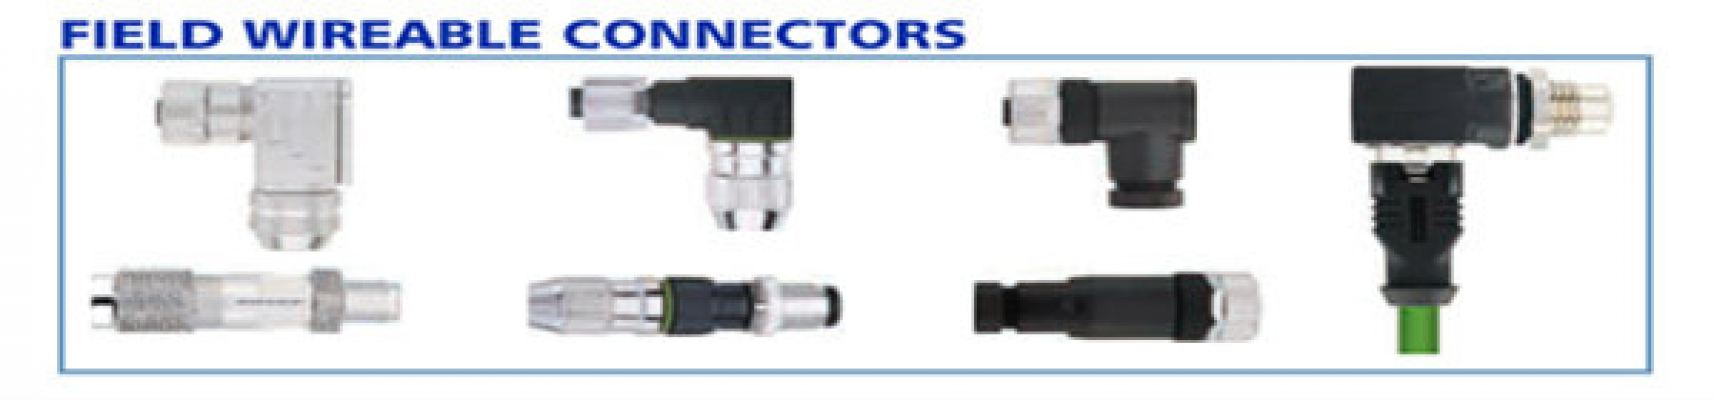 Field Wireable Connectors